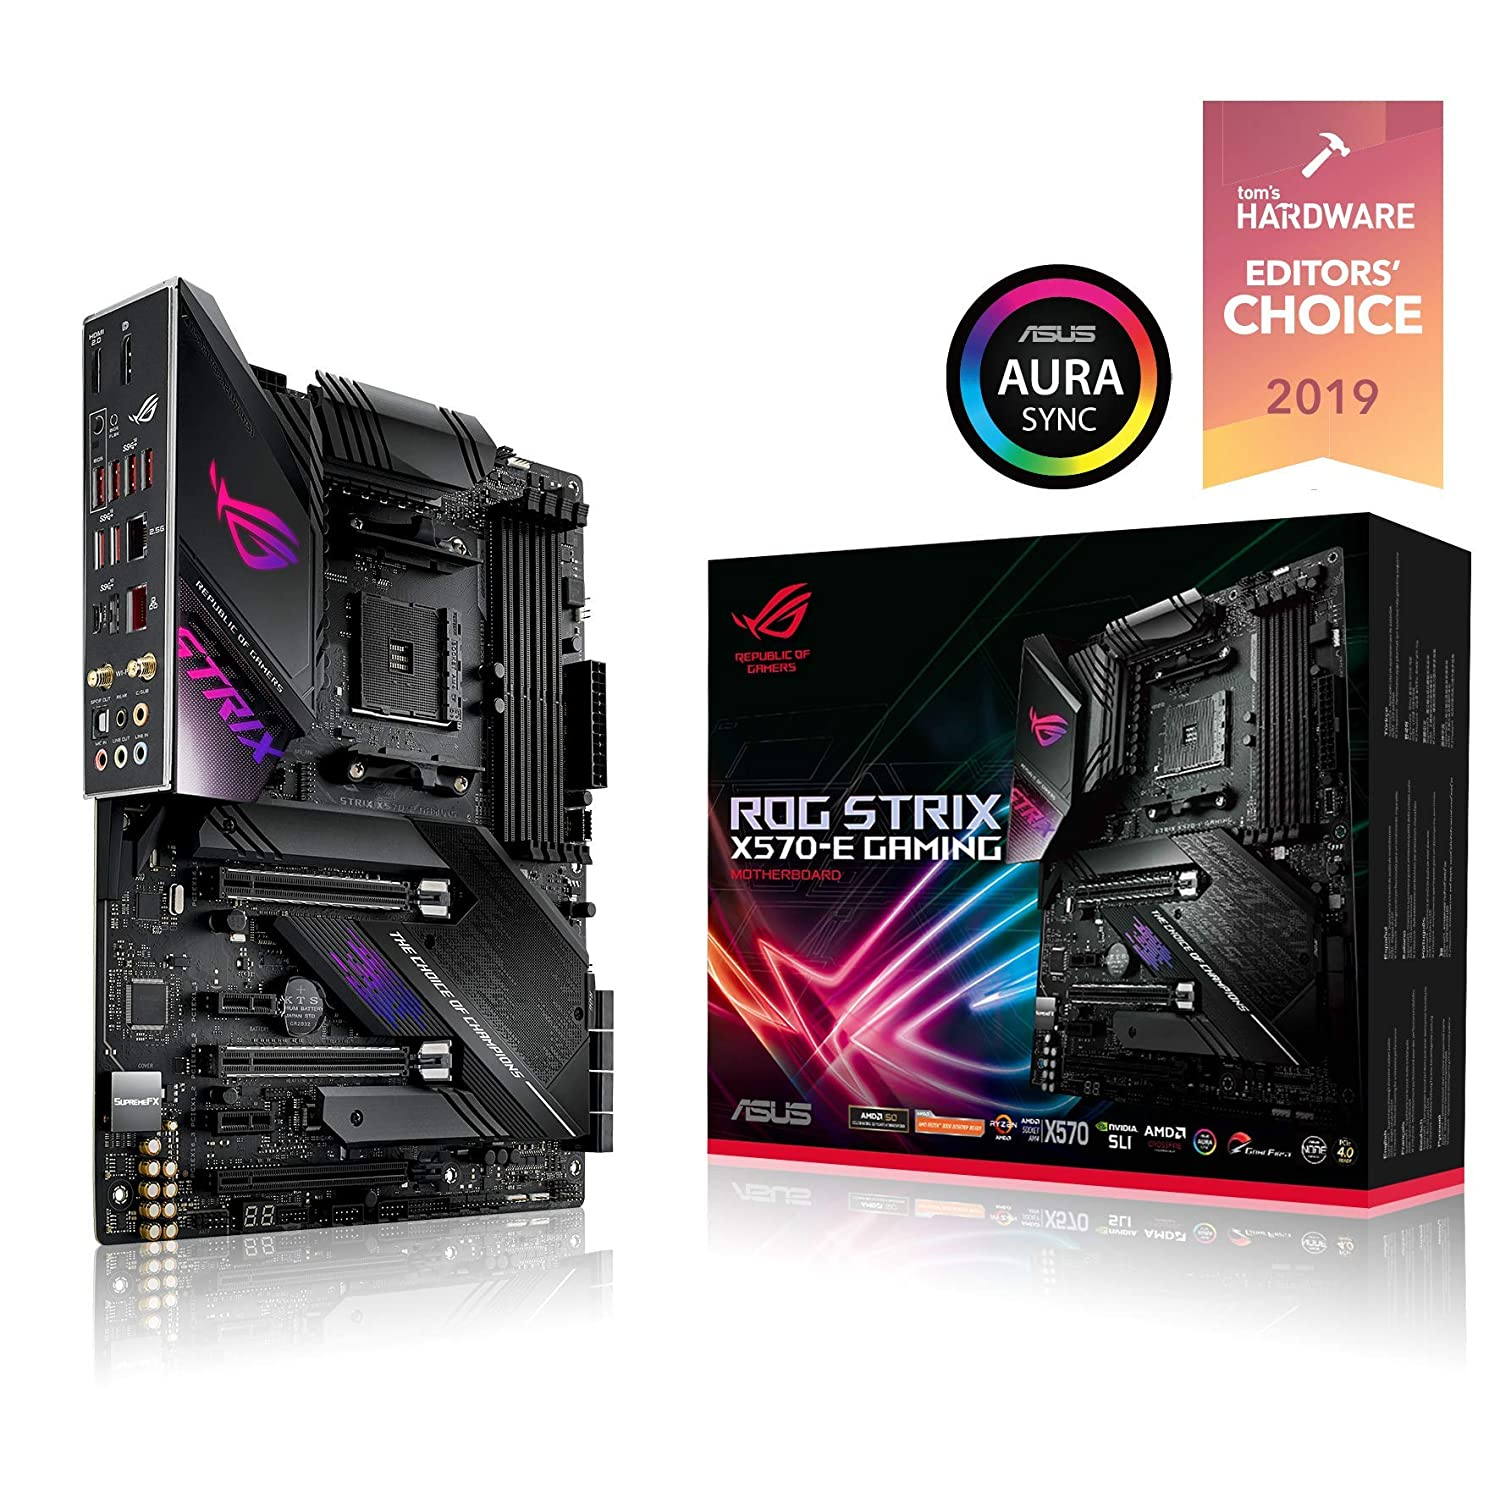 ASUS ROG Strix X570-E Gaming ATX Motherboard with PCIe 4 0, Aura Sync RGB  Lighting, 2 5 Gbps and Intel Gigabit LAN, WiFi 6 (802 11Ax), Dual M 2 with